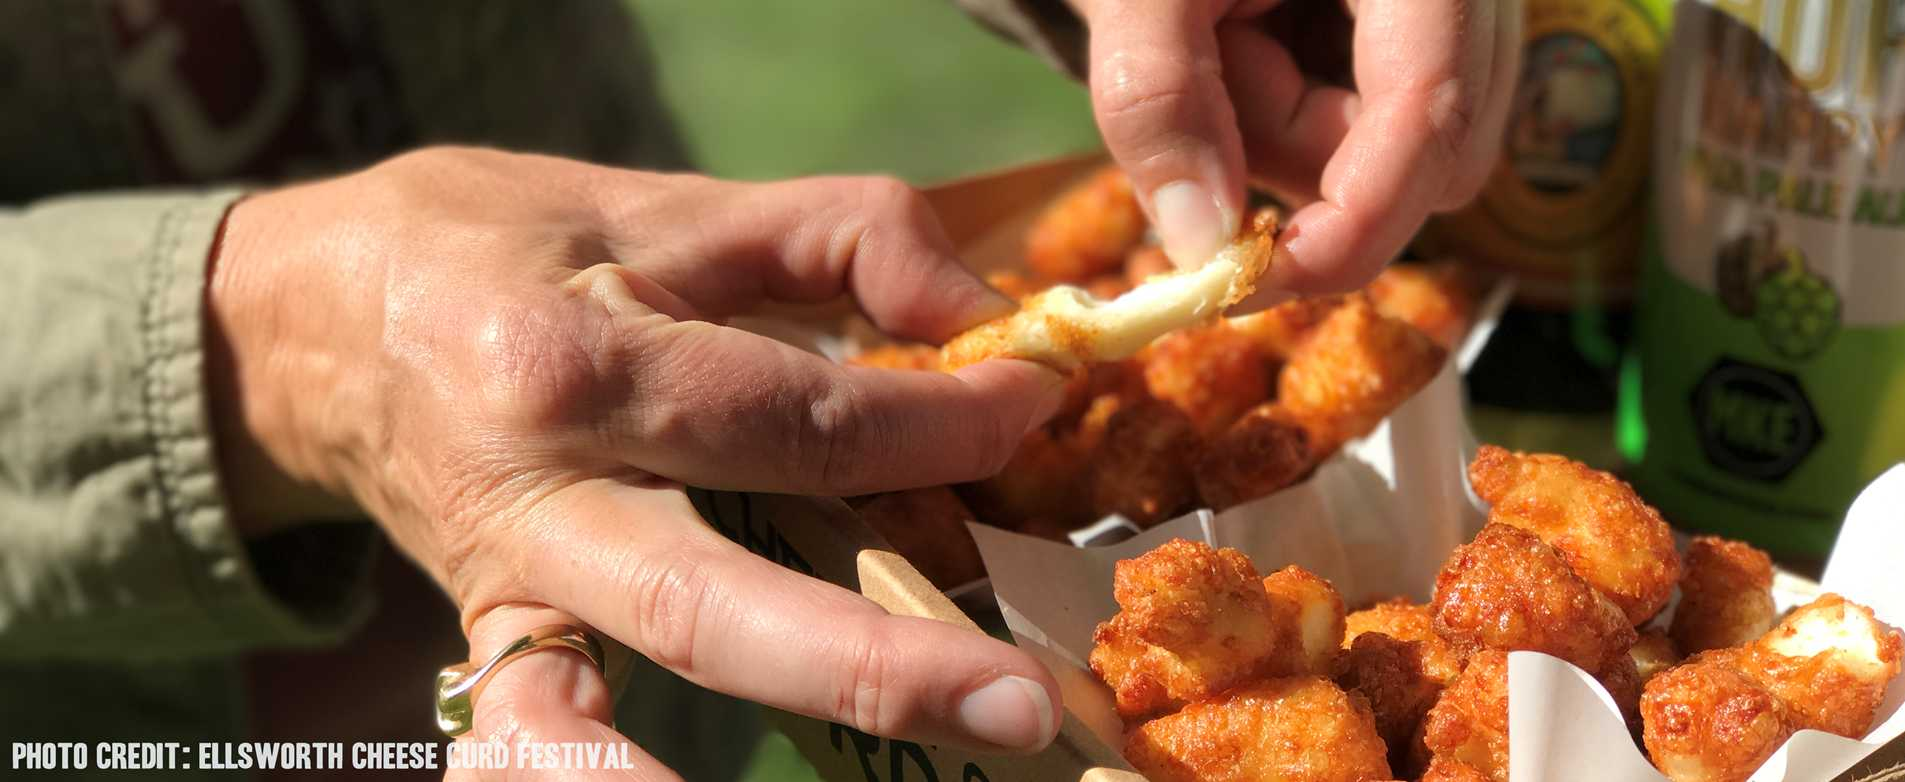 Ellsworth Cheese Curd Festival